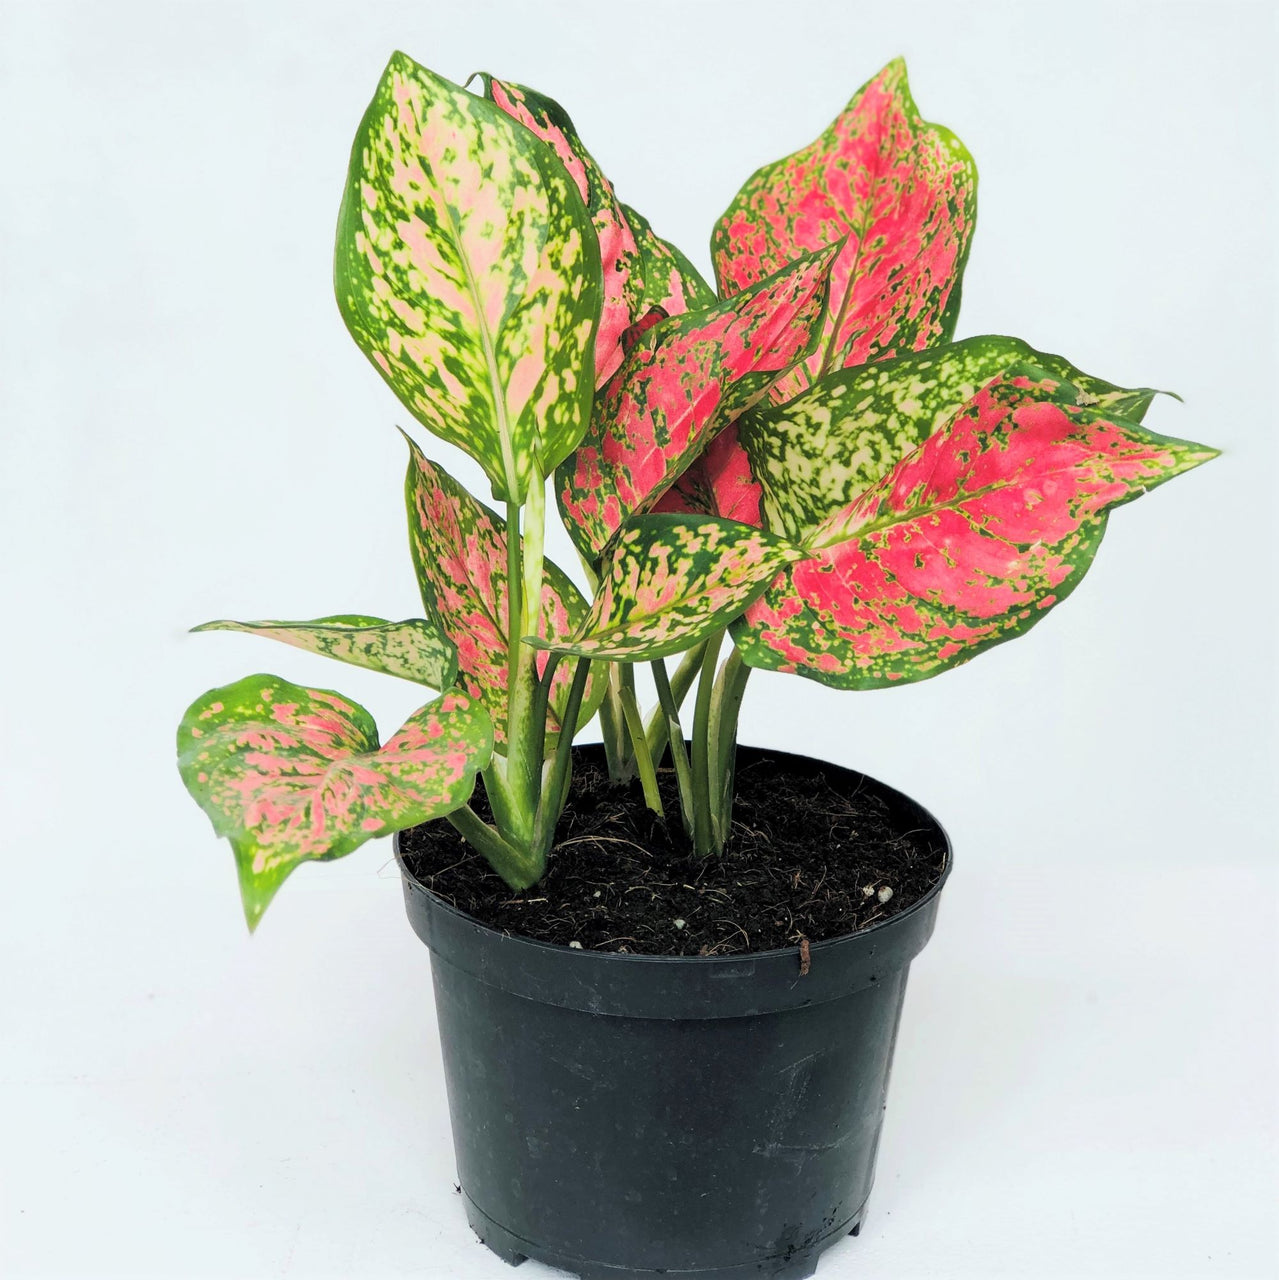 Aglaonema like bright indirect sunlight best, but will thrive in low light conditions-- making them ideal for offices and homes (especially house plant beginners). Keep the soil moist but never soggy, moderation is key. Aglaonema can survive in a low humidity environment, but they will thrive with a higher humidity level which can be achieved by misting the leaves regularly.  Comes in a 6 in nursery pot.